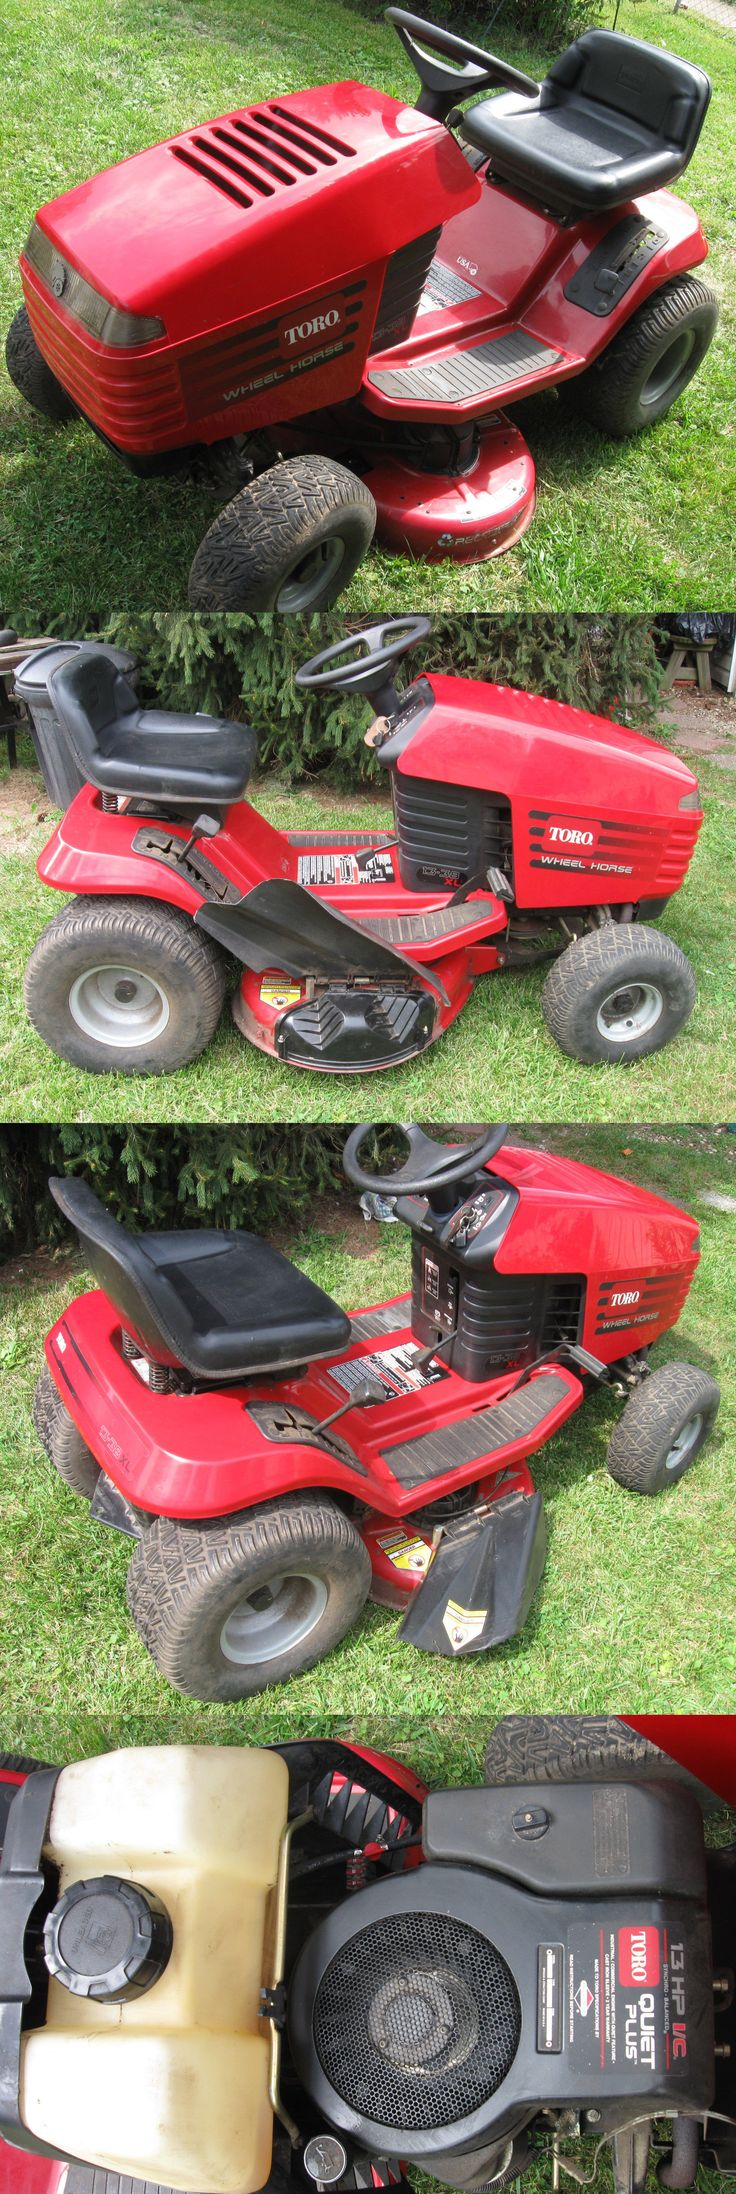 Toro timecutter z and wheel horse residential duty riding mowers are - Riding Mowers 177021 Toro Wheel Horse Lawn Tractor 13hp 38xl Mulcher 1996 Pdf File Manual